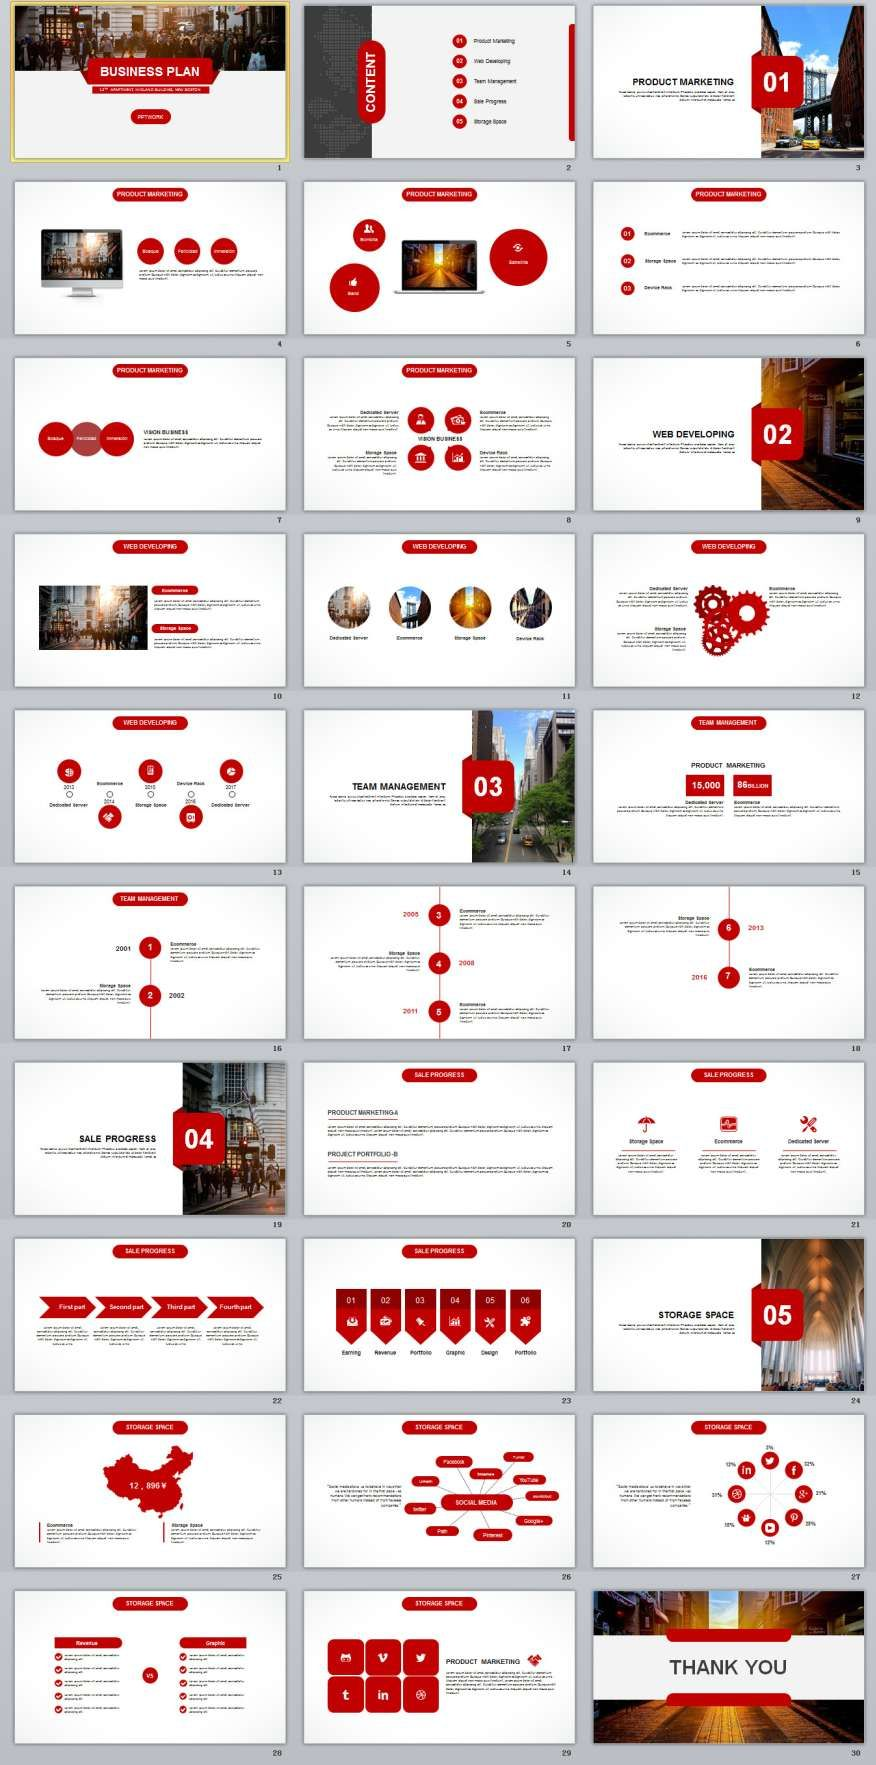 30 red business plan powerpoint templates business planning 30 red business plan powerpoint templates toneelgroepblik Choice Image